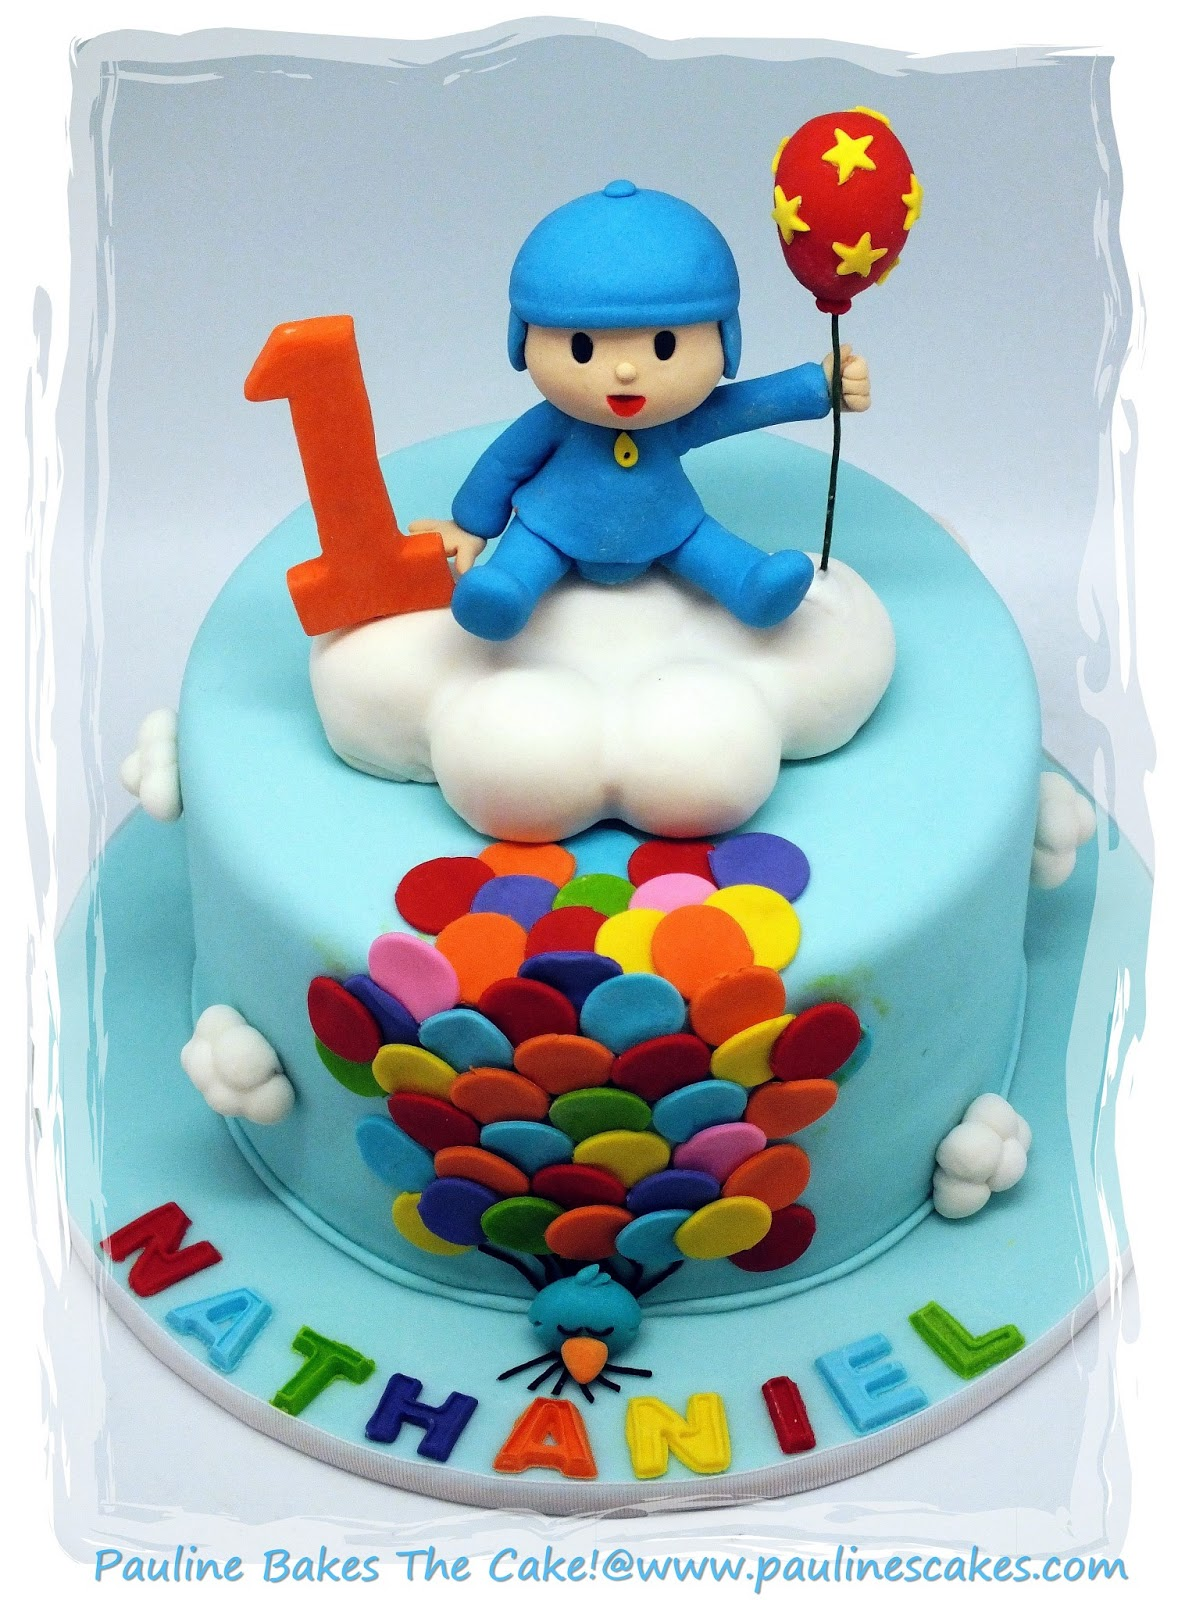 Pauline Bakes The Cake Hola Its Pocoyo Up Up Away With